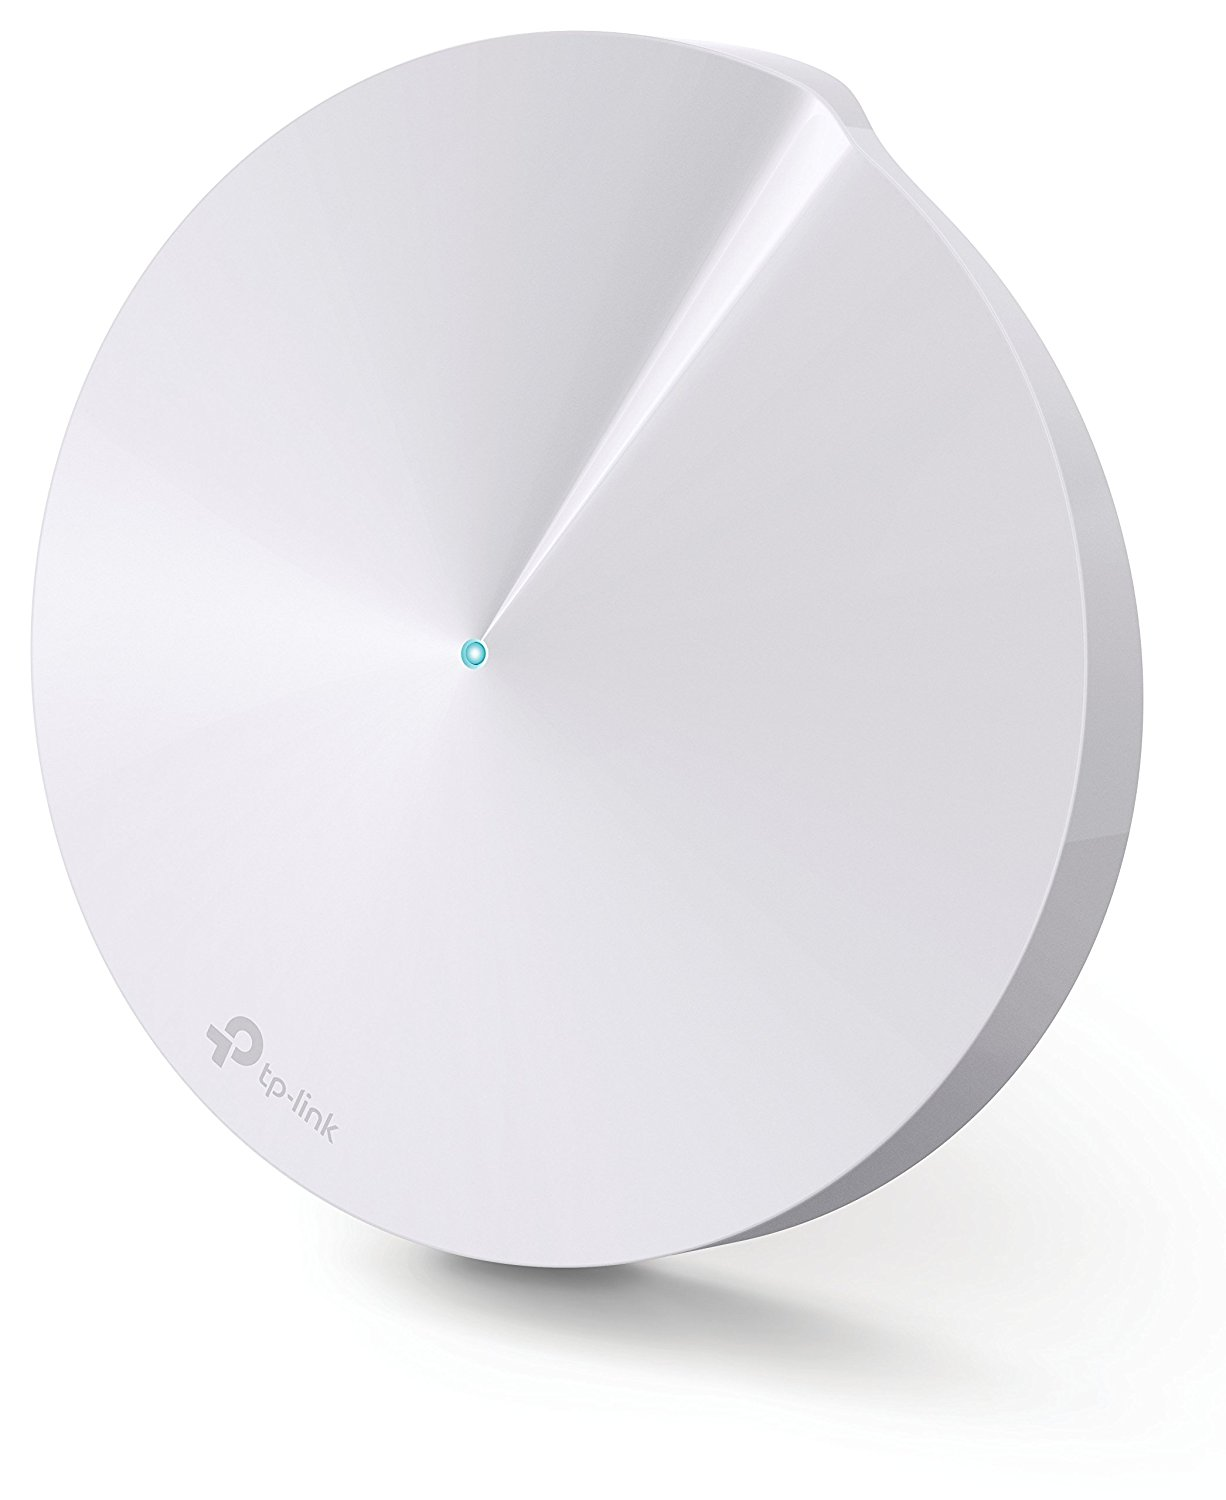 Tp Link Archives Page 4 Of 20 Interconnect It Solutions Cpe220 24ghz 300mbps 12dbi Outdoor Cpe Tl Decom5 1p Deco M5 1 Pack